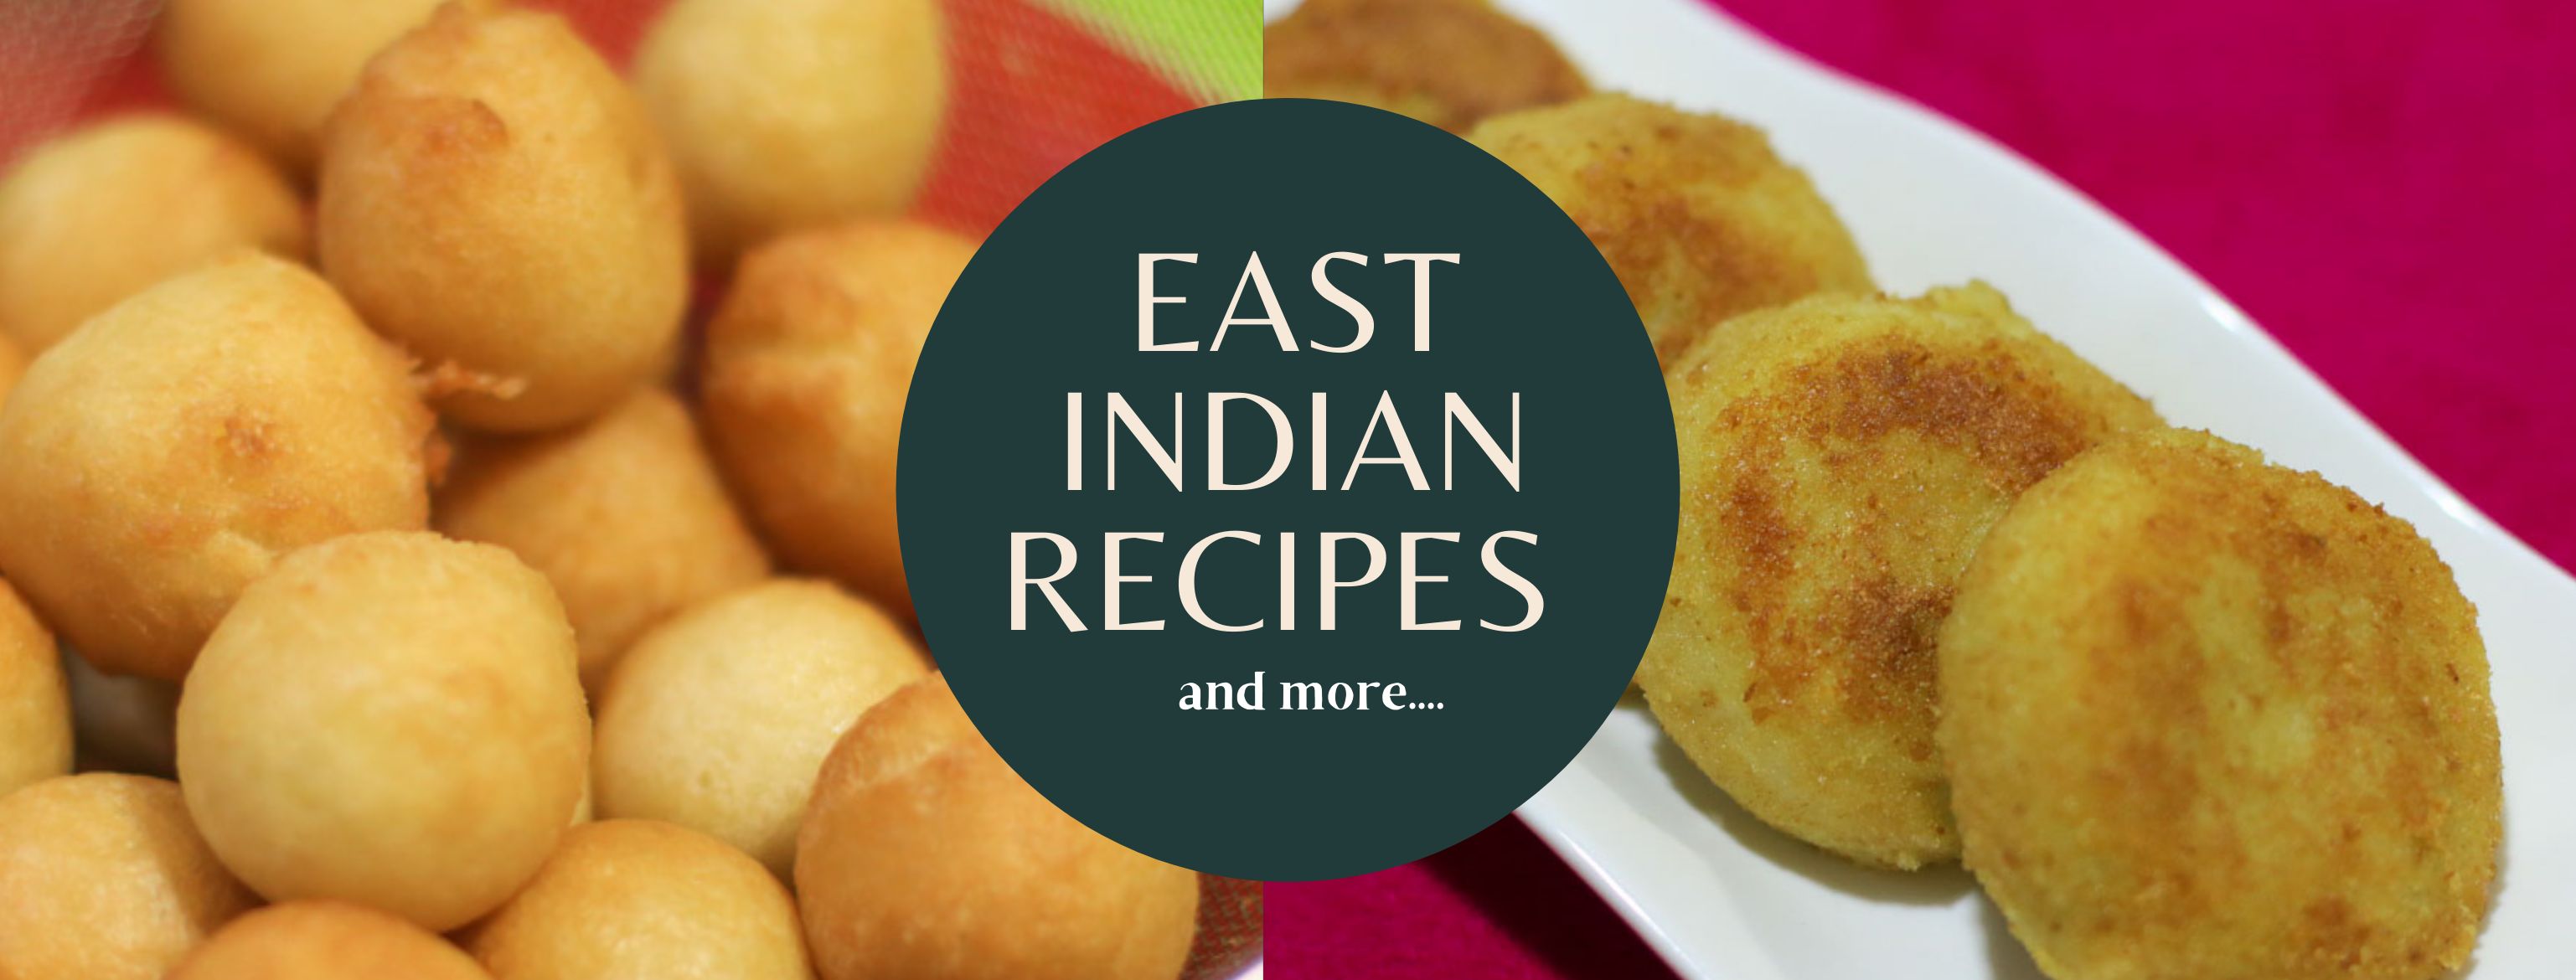 East Indian Recipes